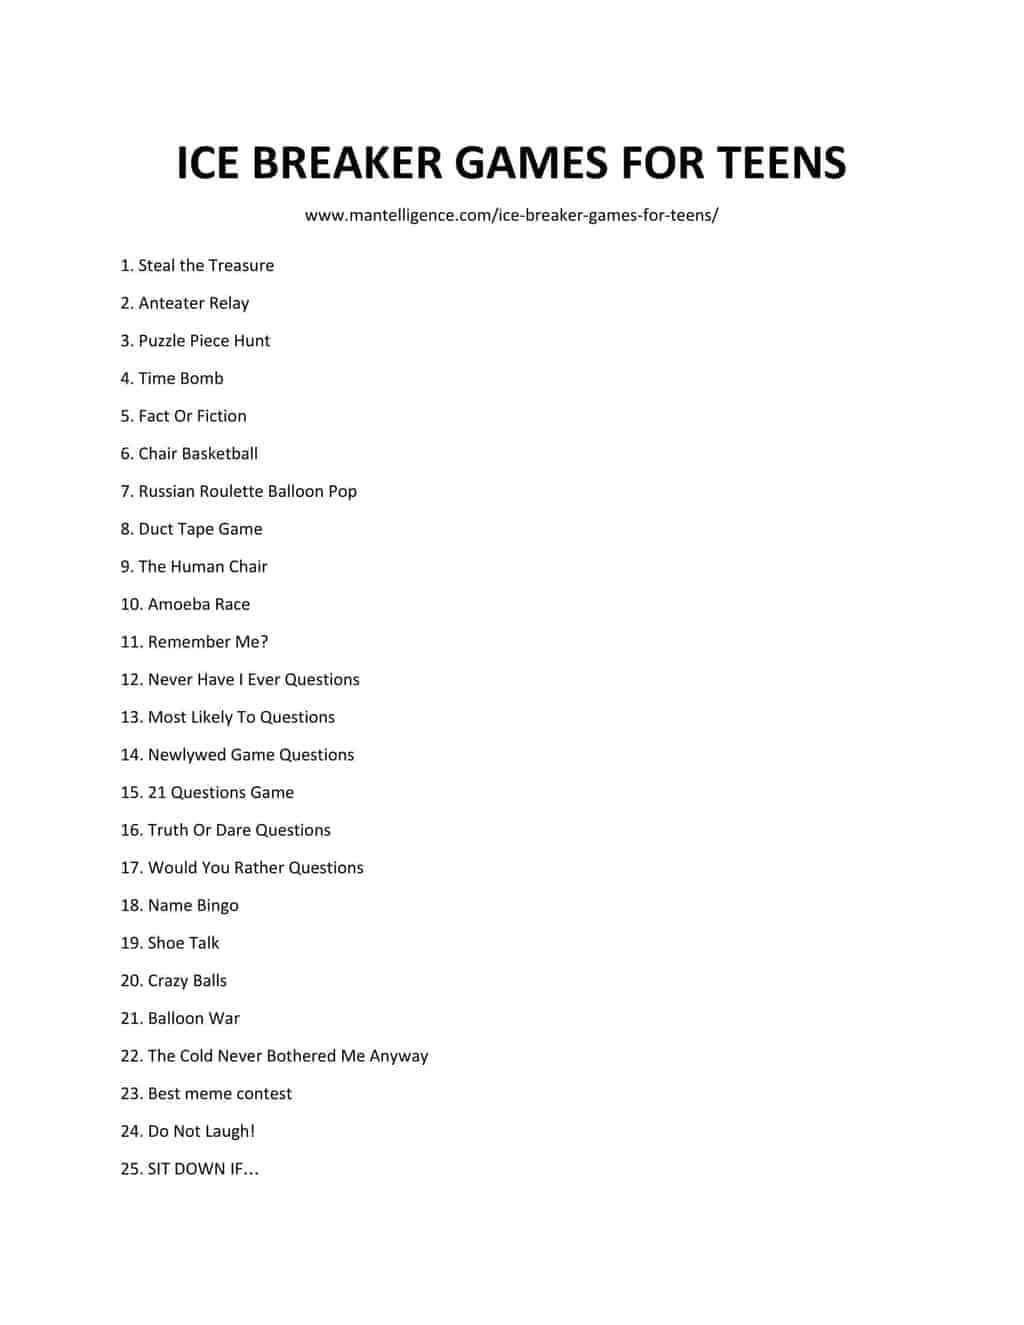 List of ICE BREAKER GAMES FOR TEENS 3